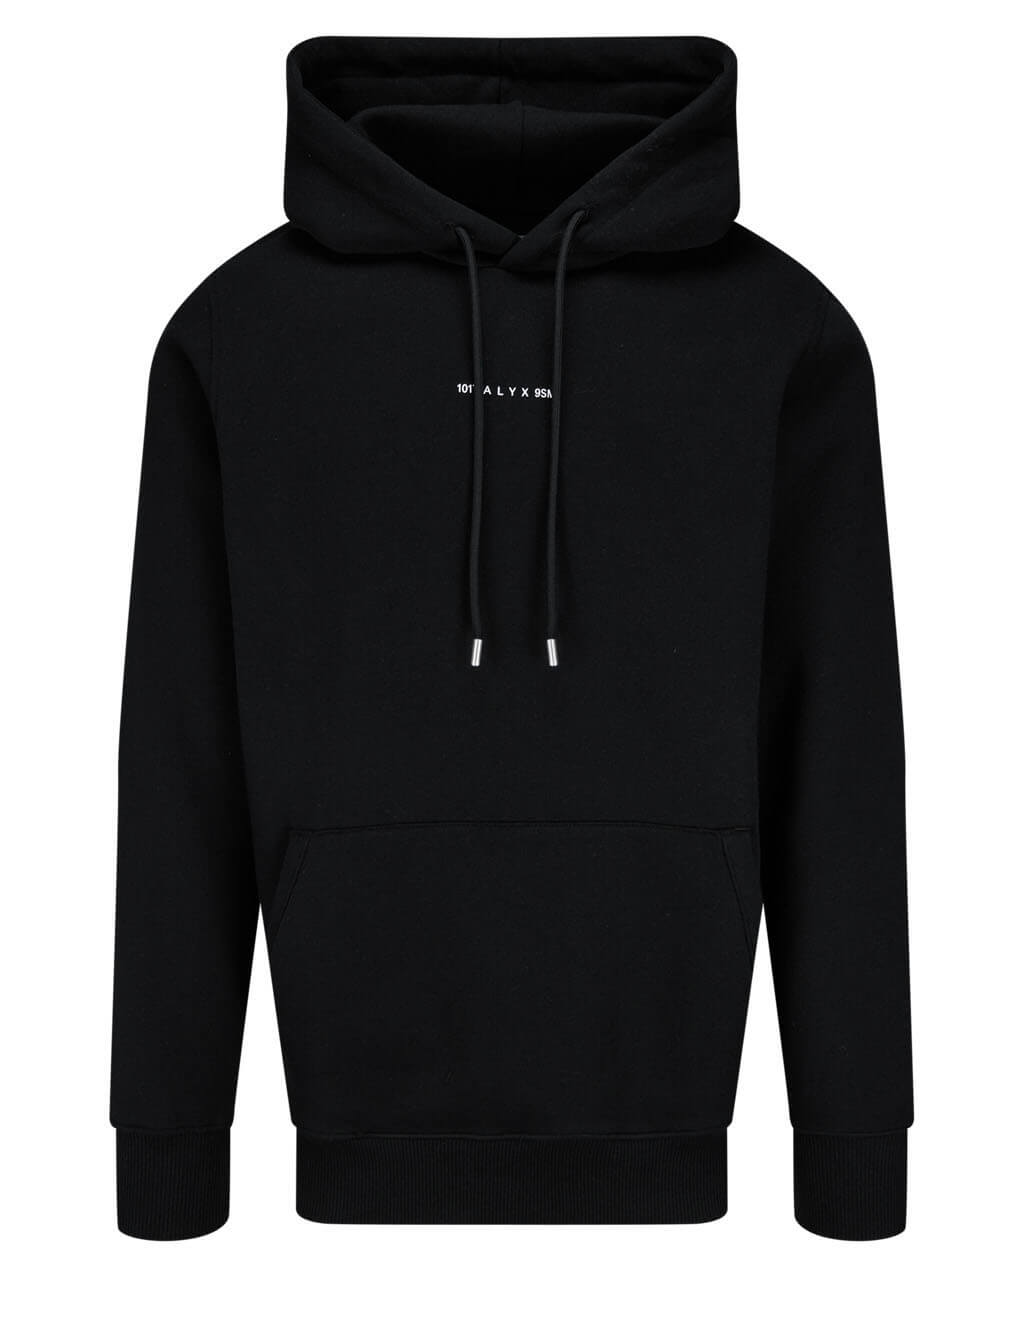 Men's 1017 ALYX 9SM Visual Hoodie in Black - AVUSW0009FA01-BLK0001